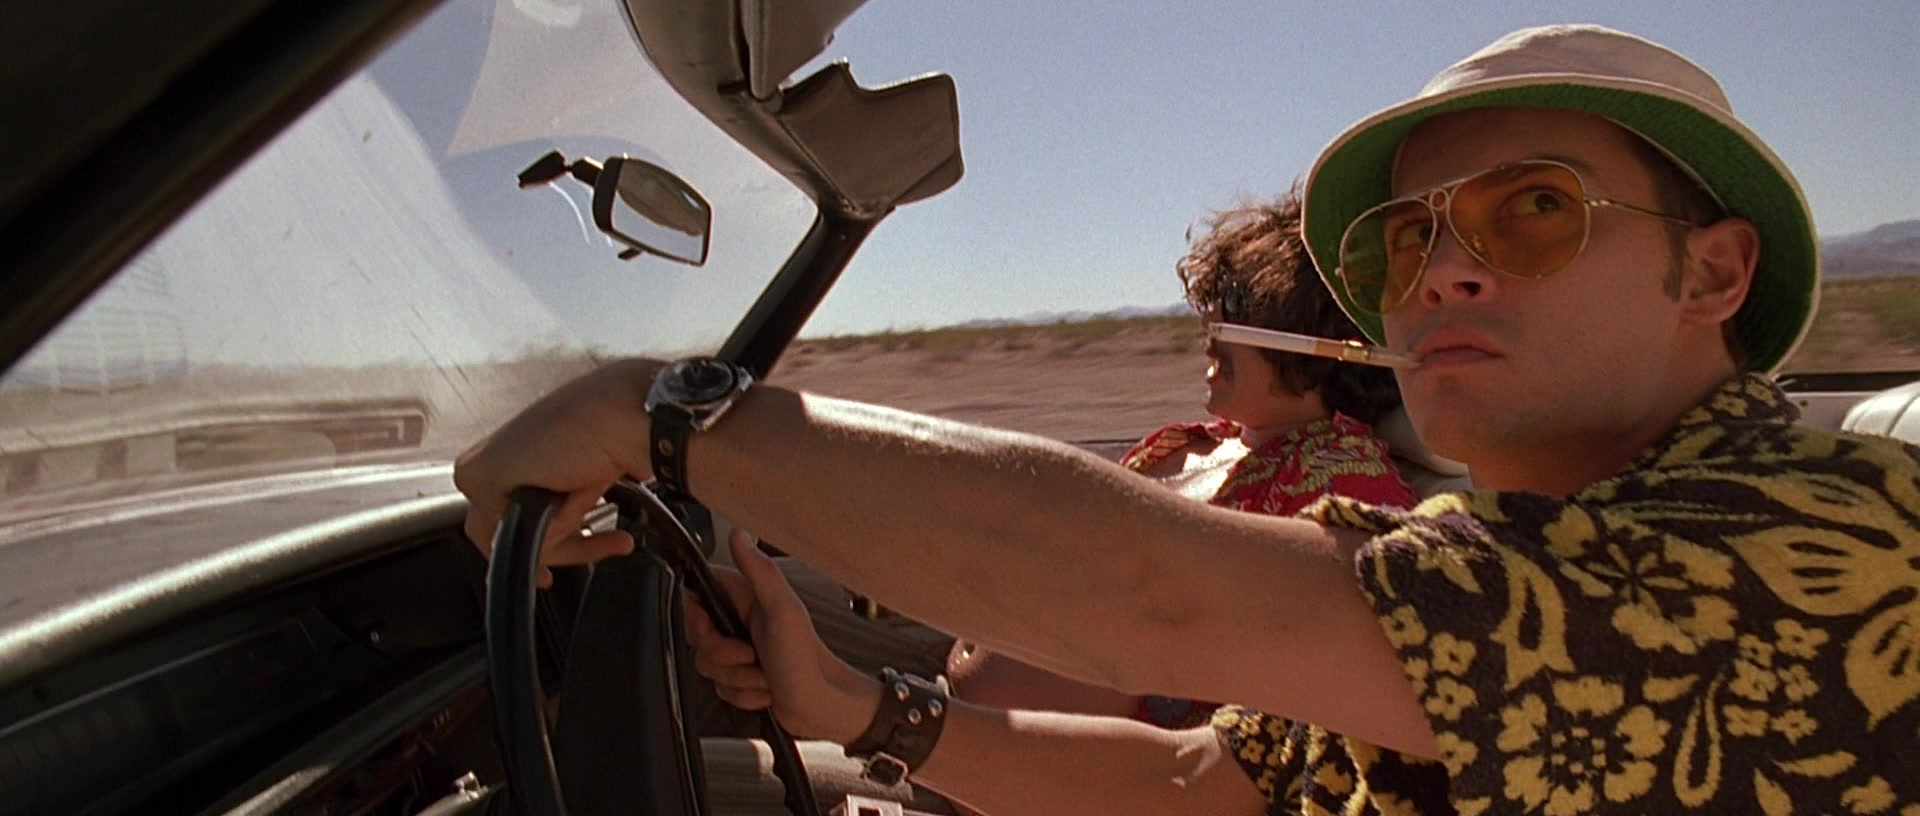 7752f25d28 Ray-Ban Shooter RB3138 Aviator Sunglasses Worn by Johnny Depp in Fear and  Loathing in Las Vegas (1998)